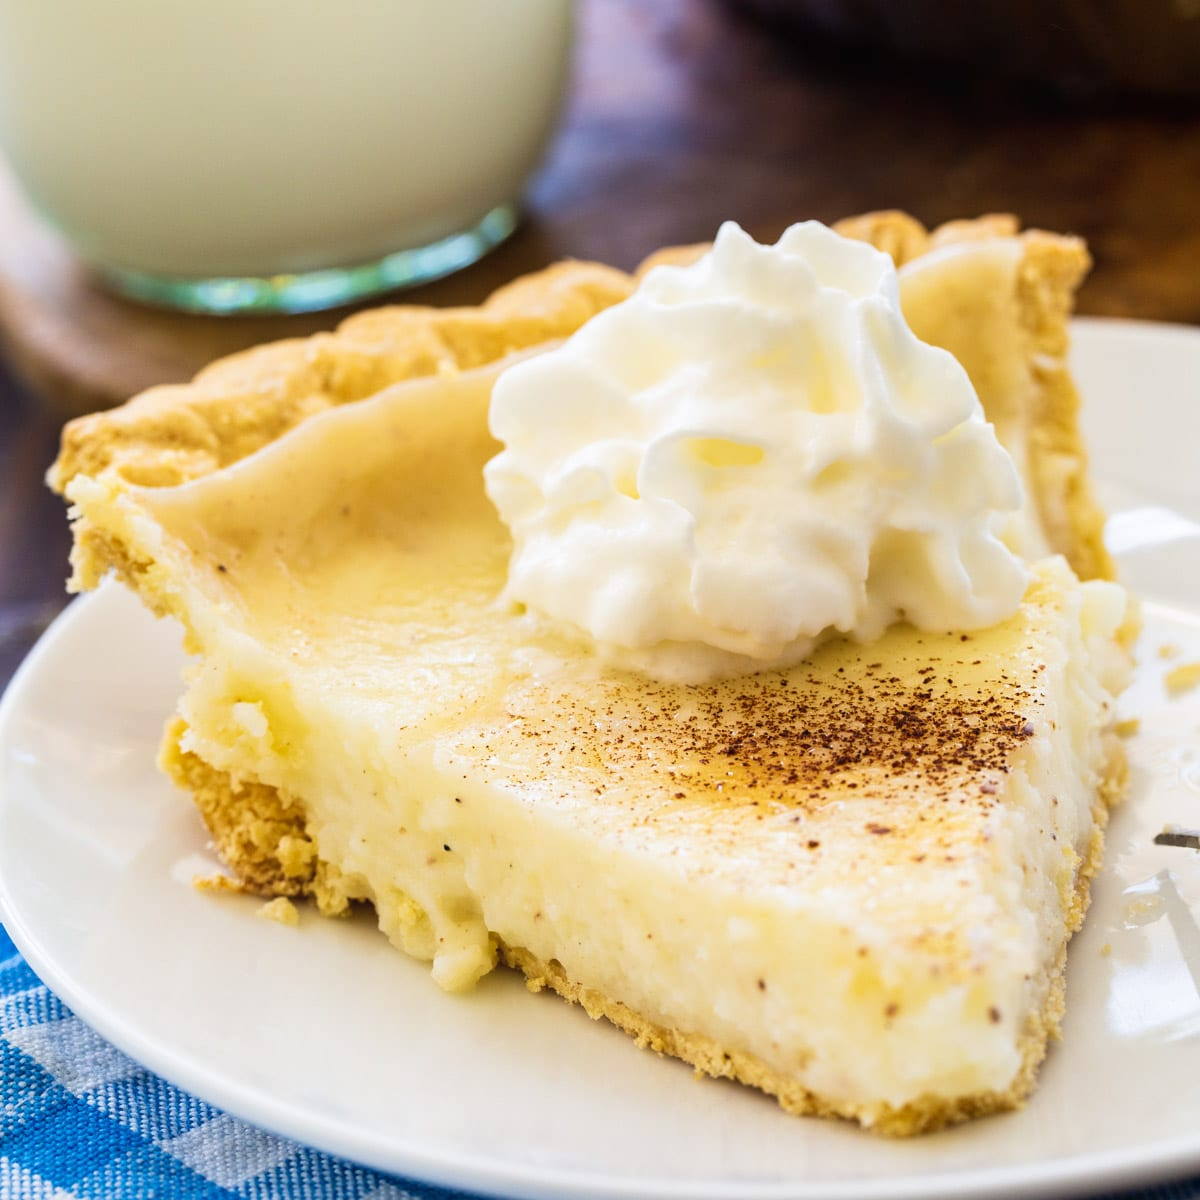 Slice of Sugar Cream Pie topped with whipped cream.